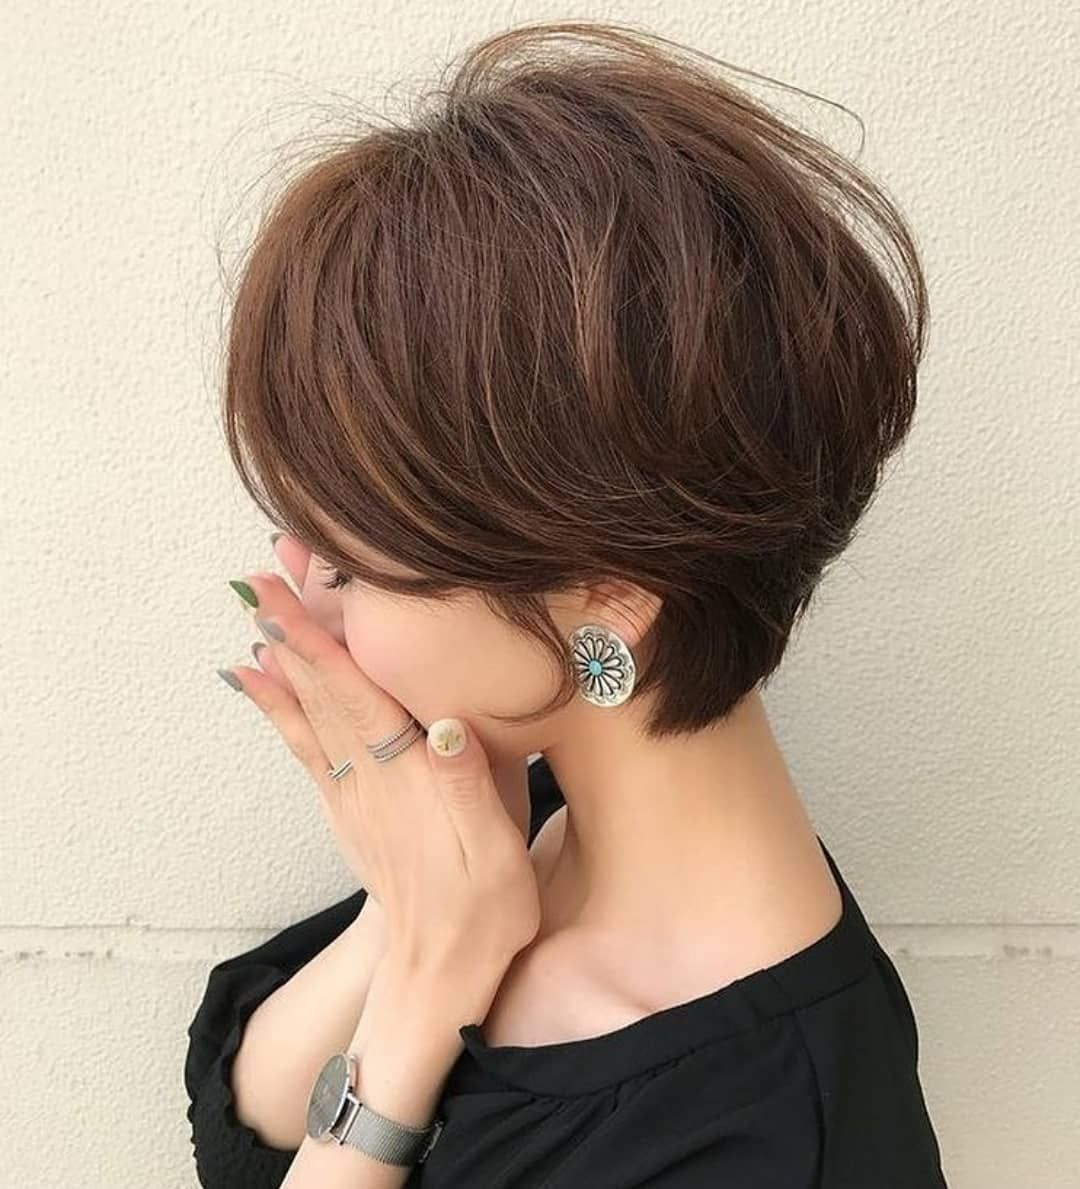 10 Cute Short Hairstyles and Haircuts for Young Gi